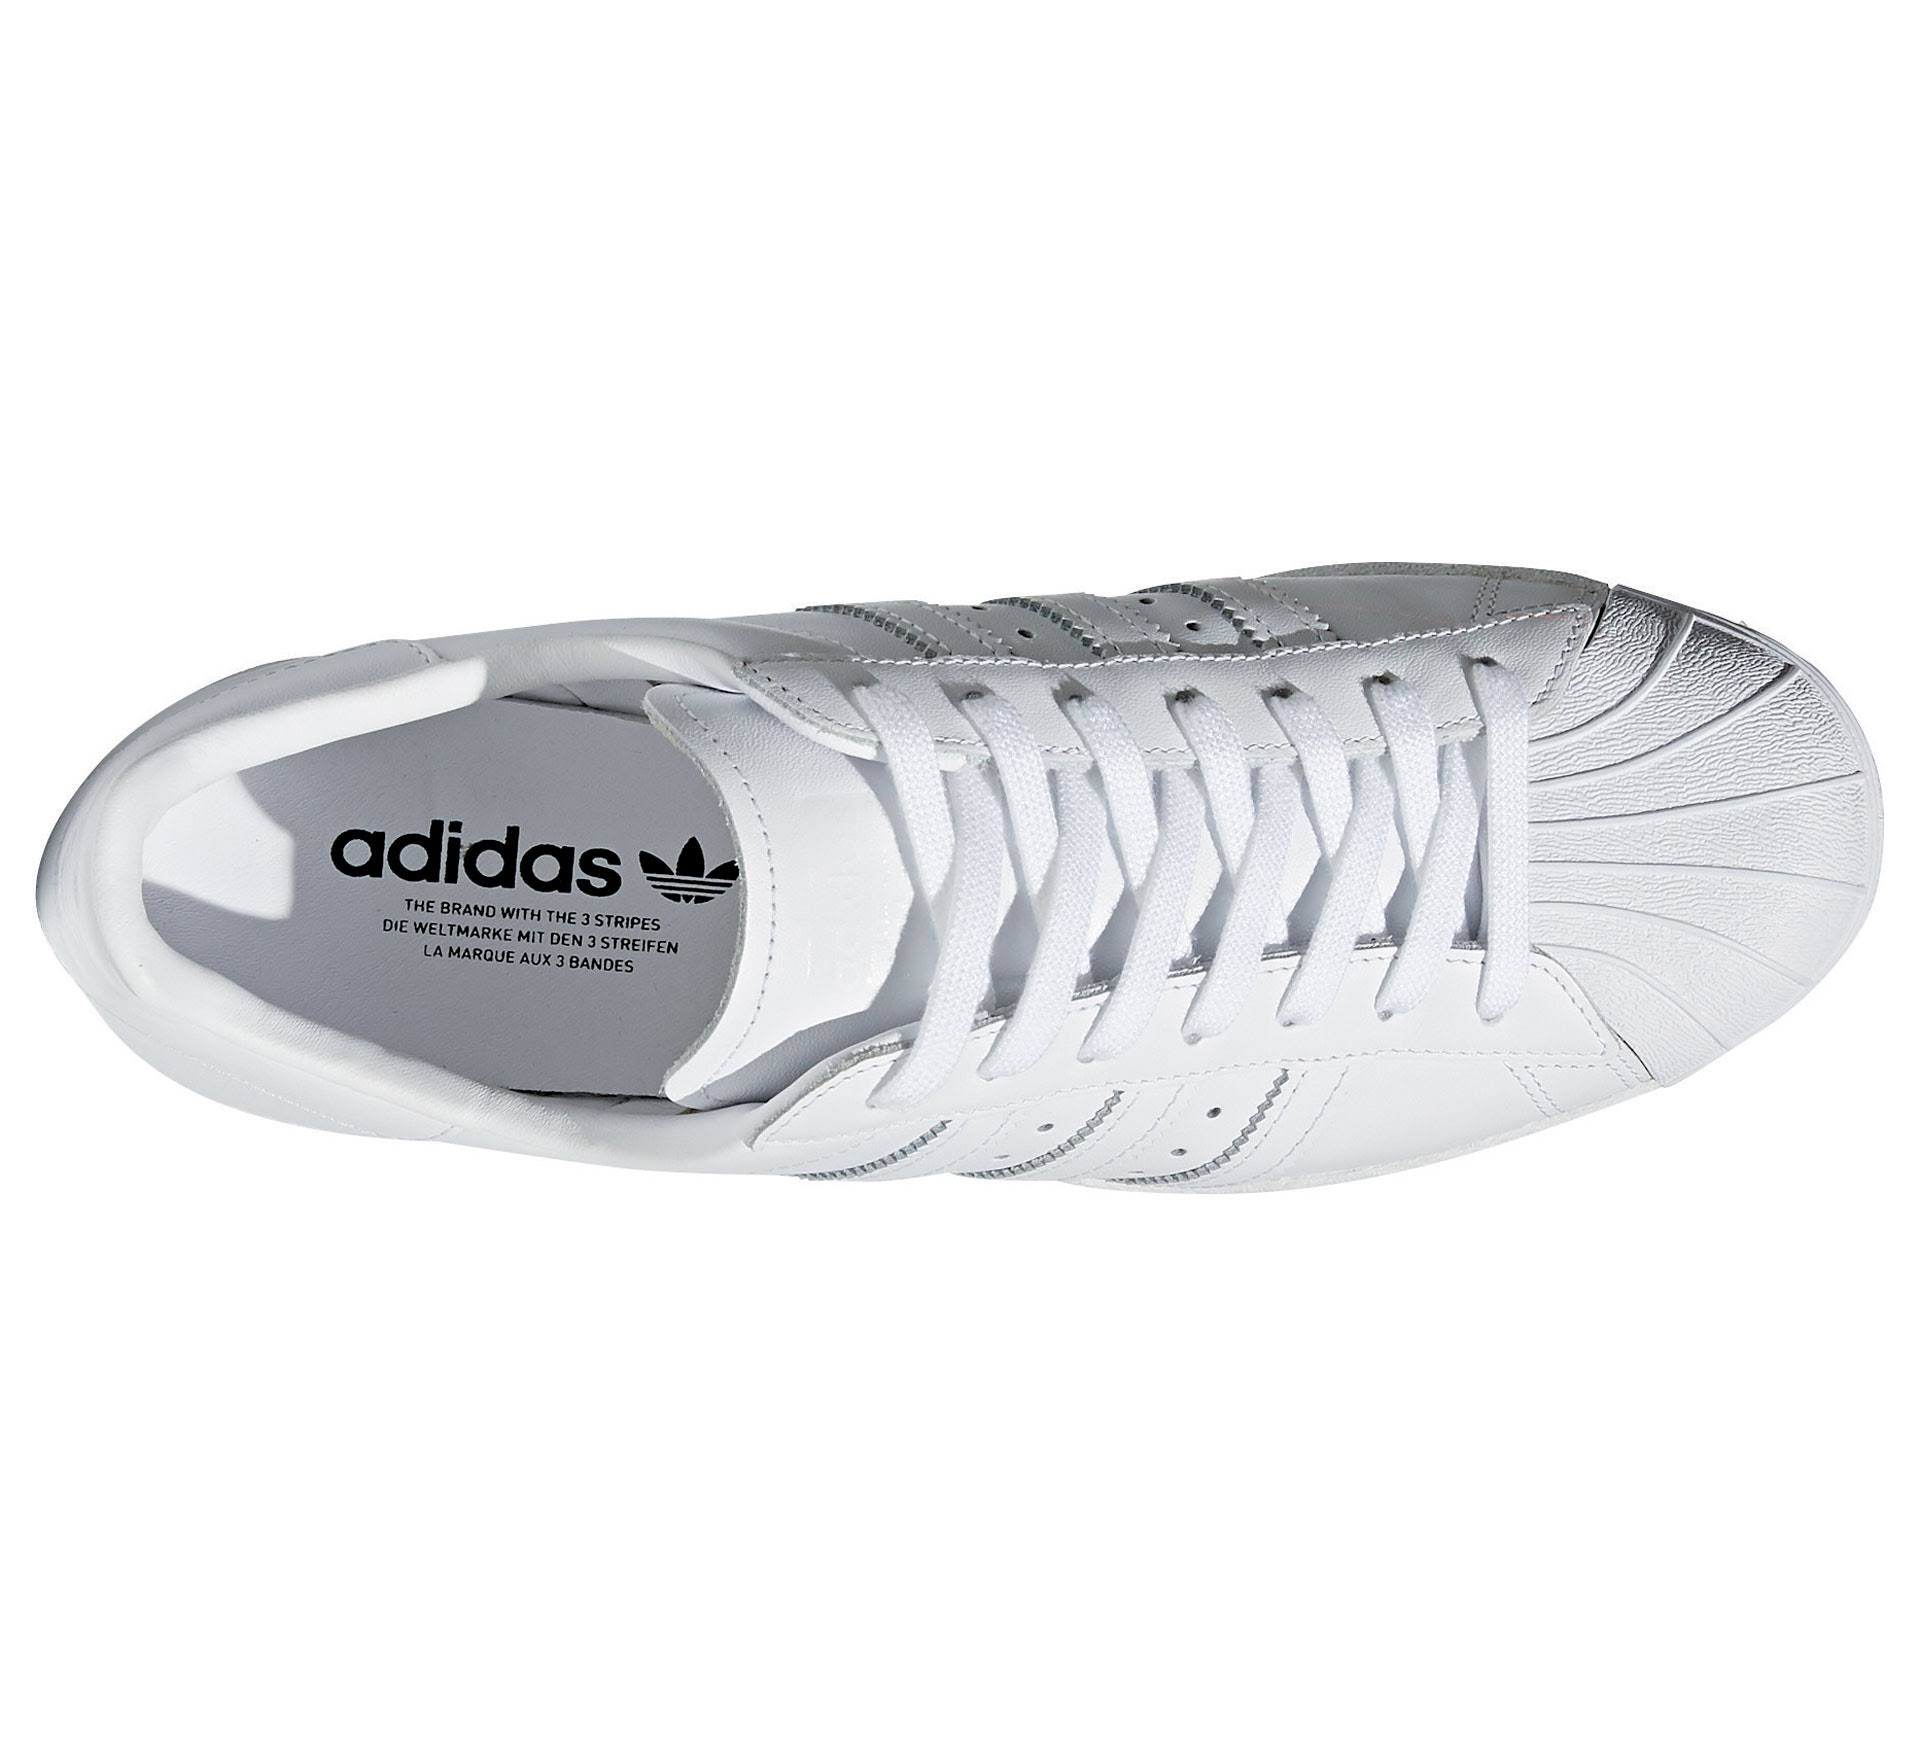 Adidas footwear Leder White core Black White '80s Schuh footwear Black 36 Elfenbein Superstar rxzB4qAr